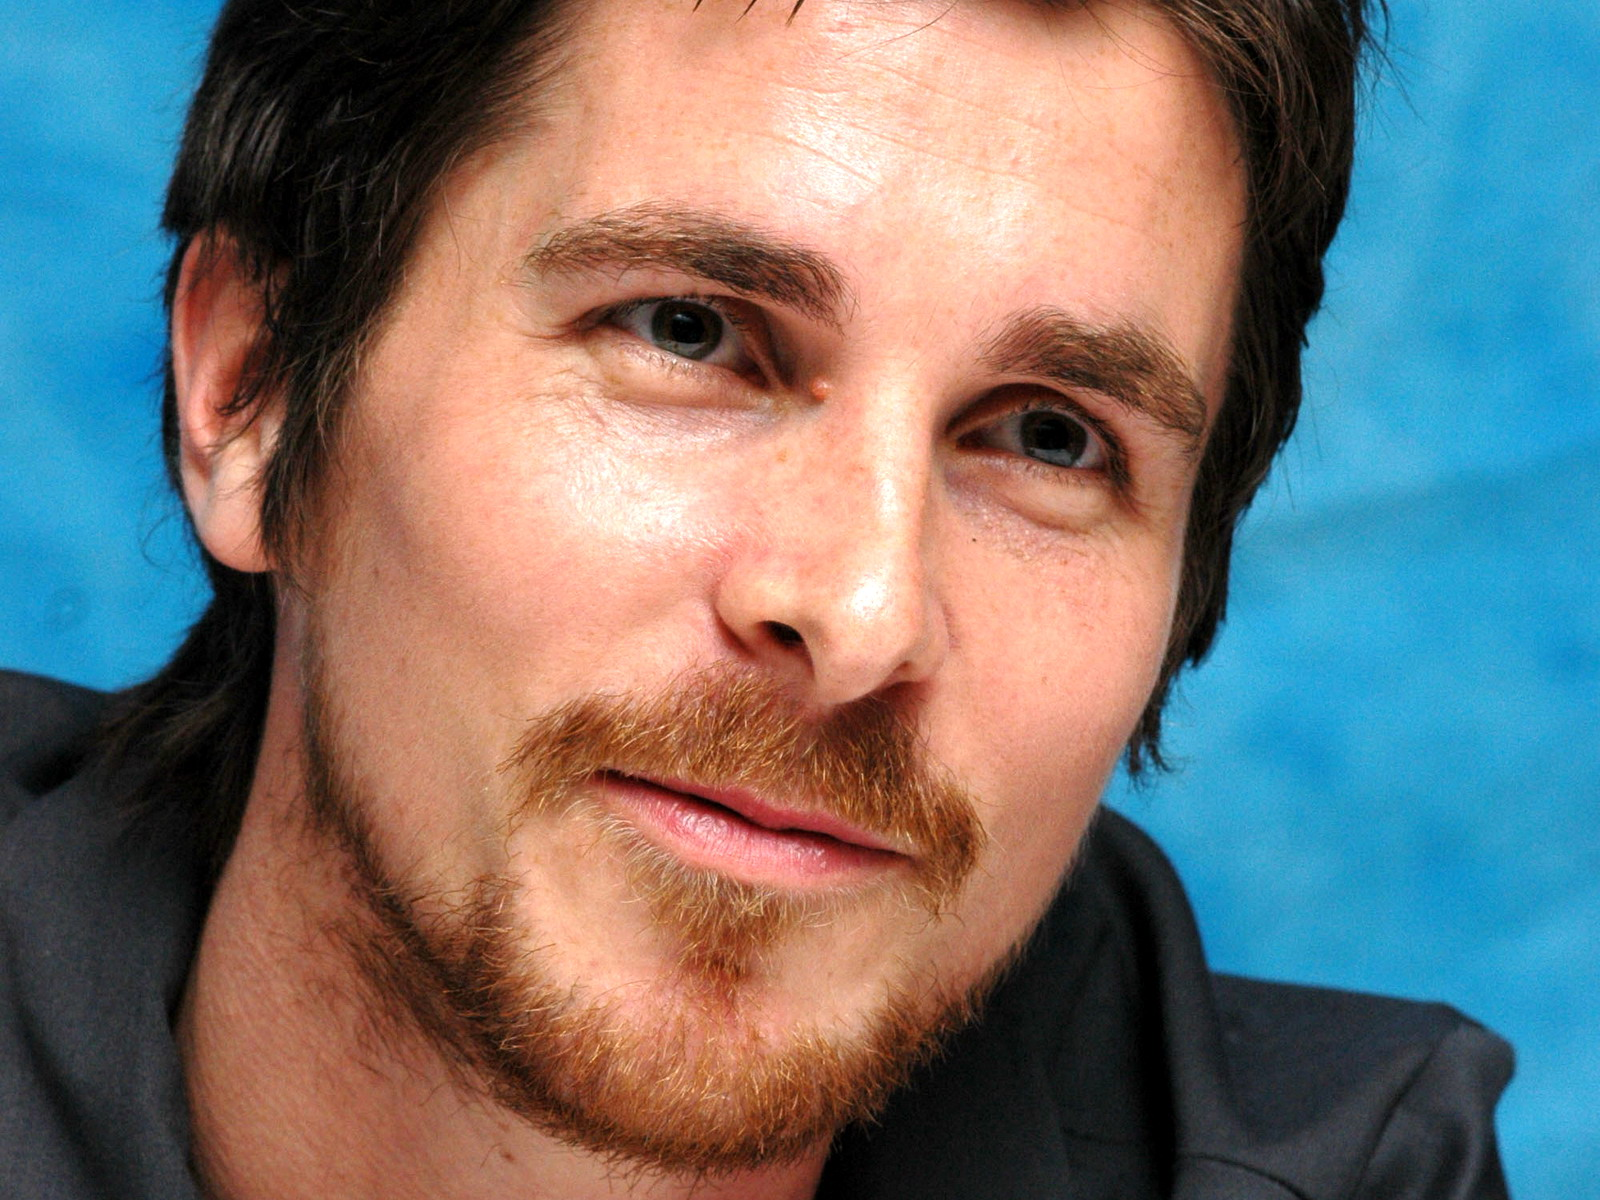 Christian Bale has reportedly decided to back out of playing Steve Jobs in the upcoming biopic from Sony Pictures Entertainment, just two weeks after the ...